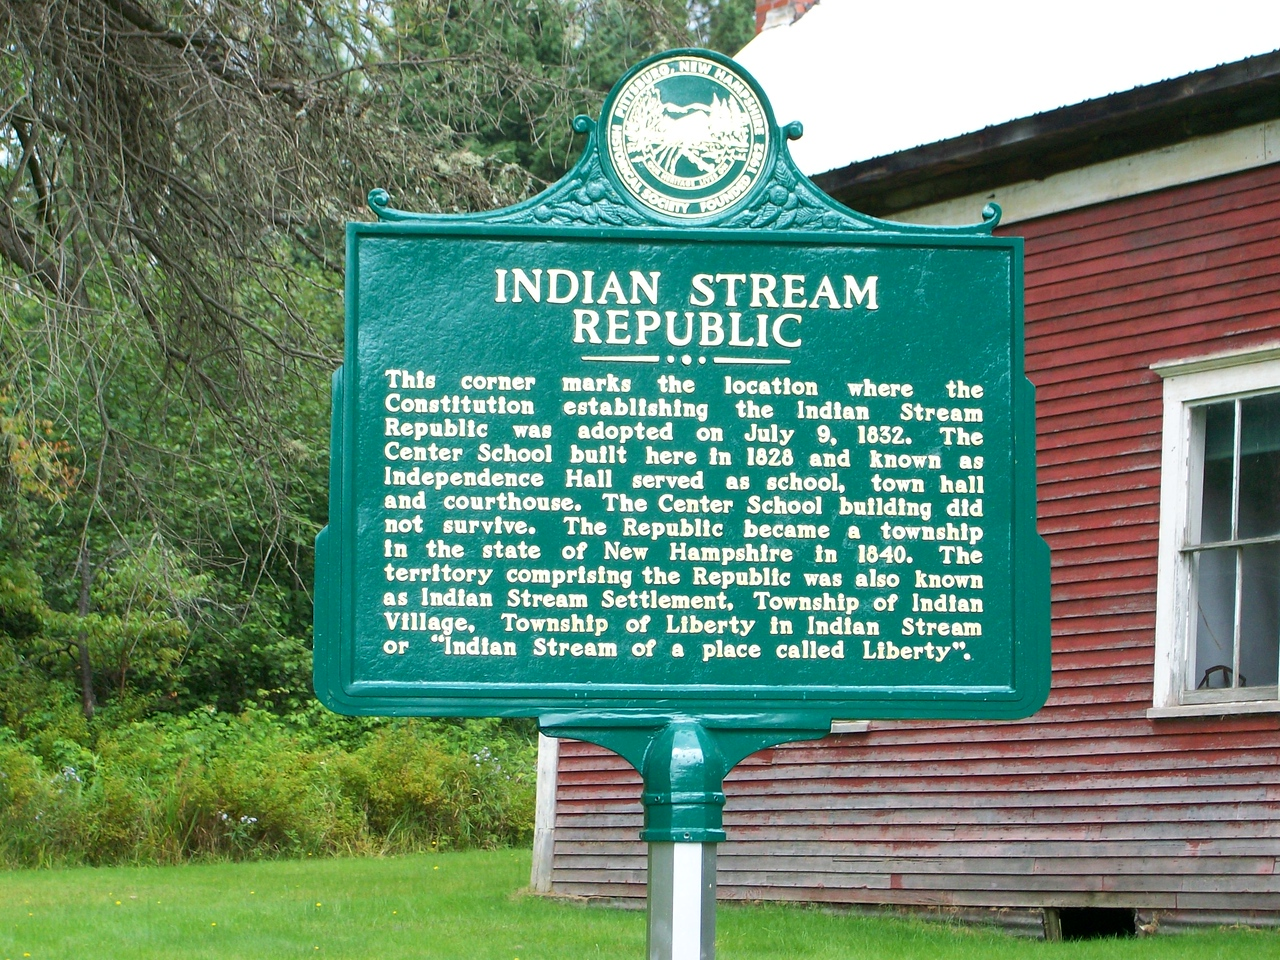 Indian Stream Republic historical sign